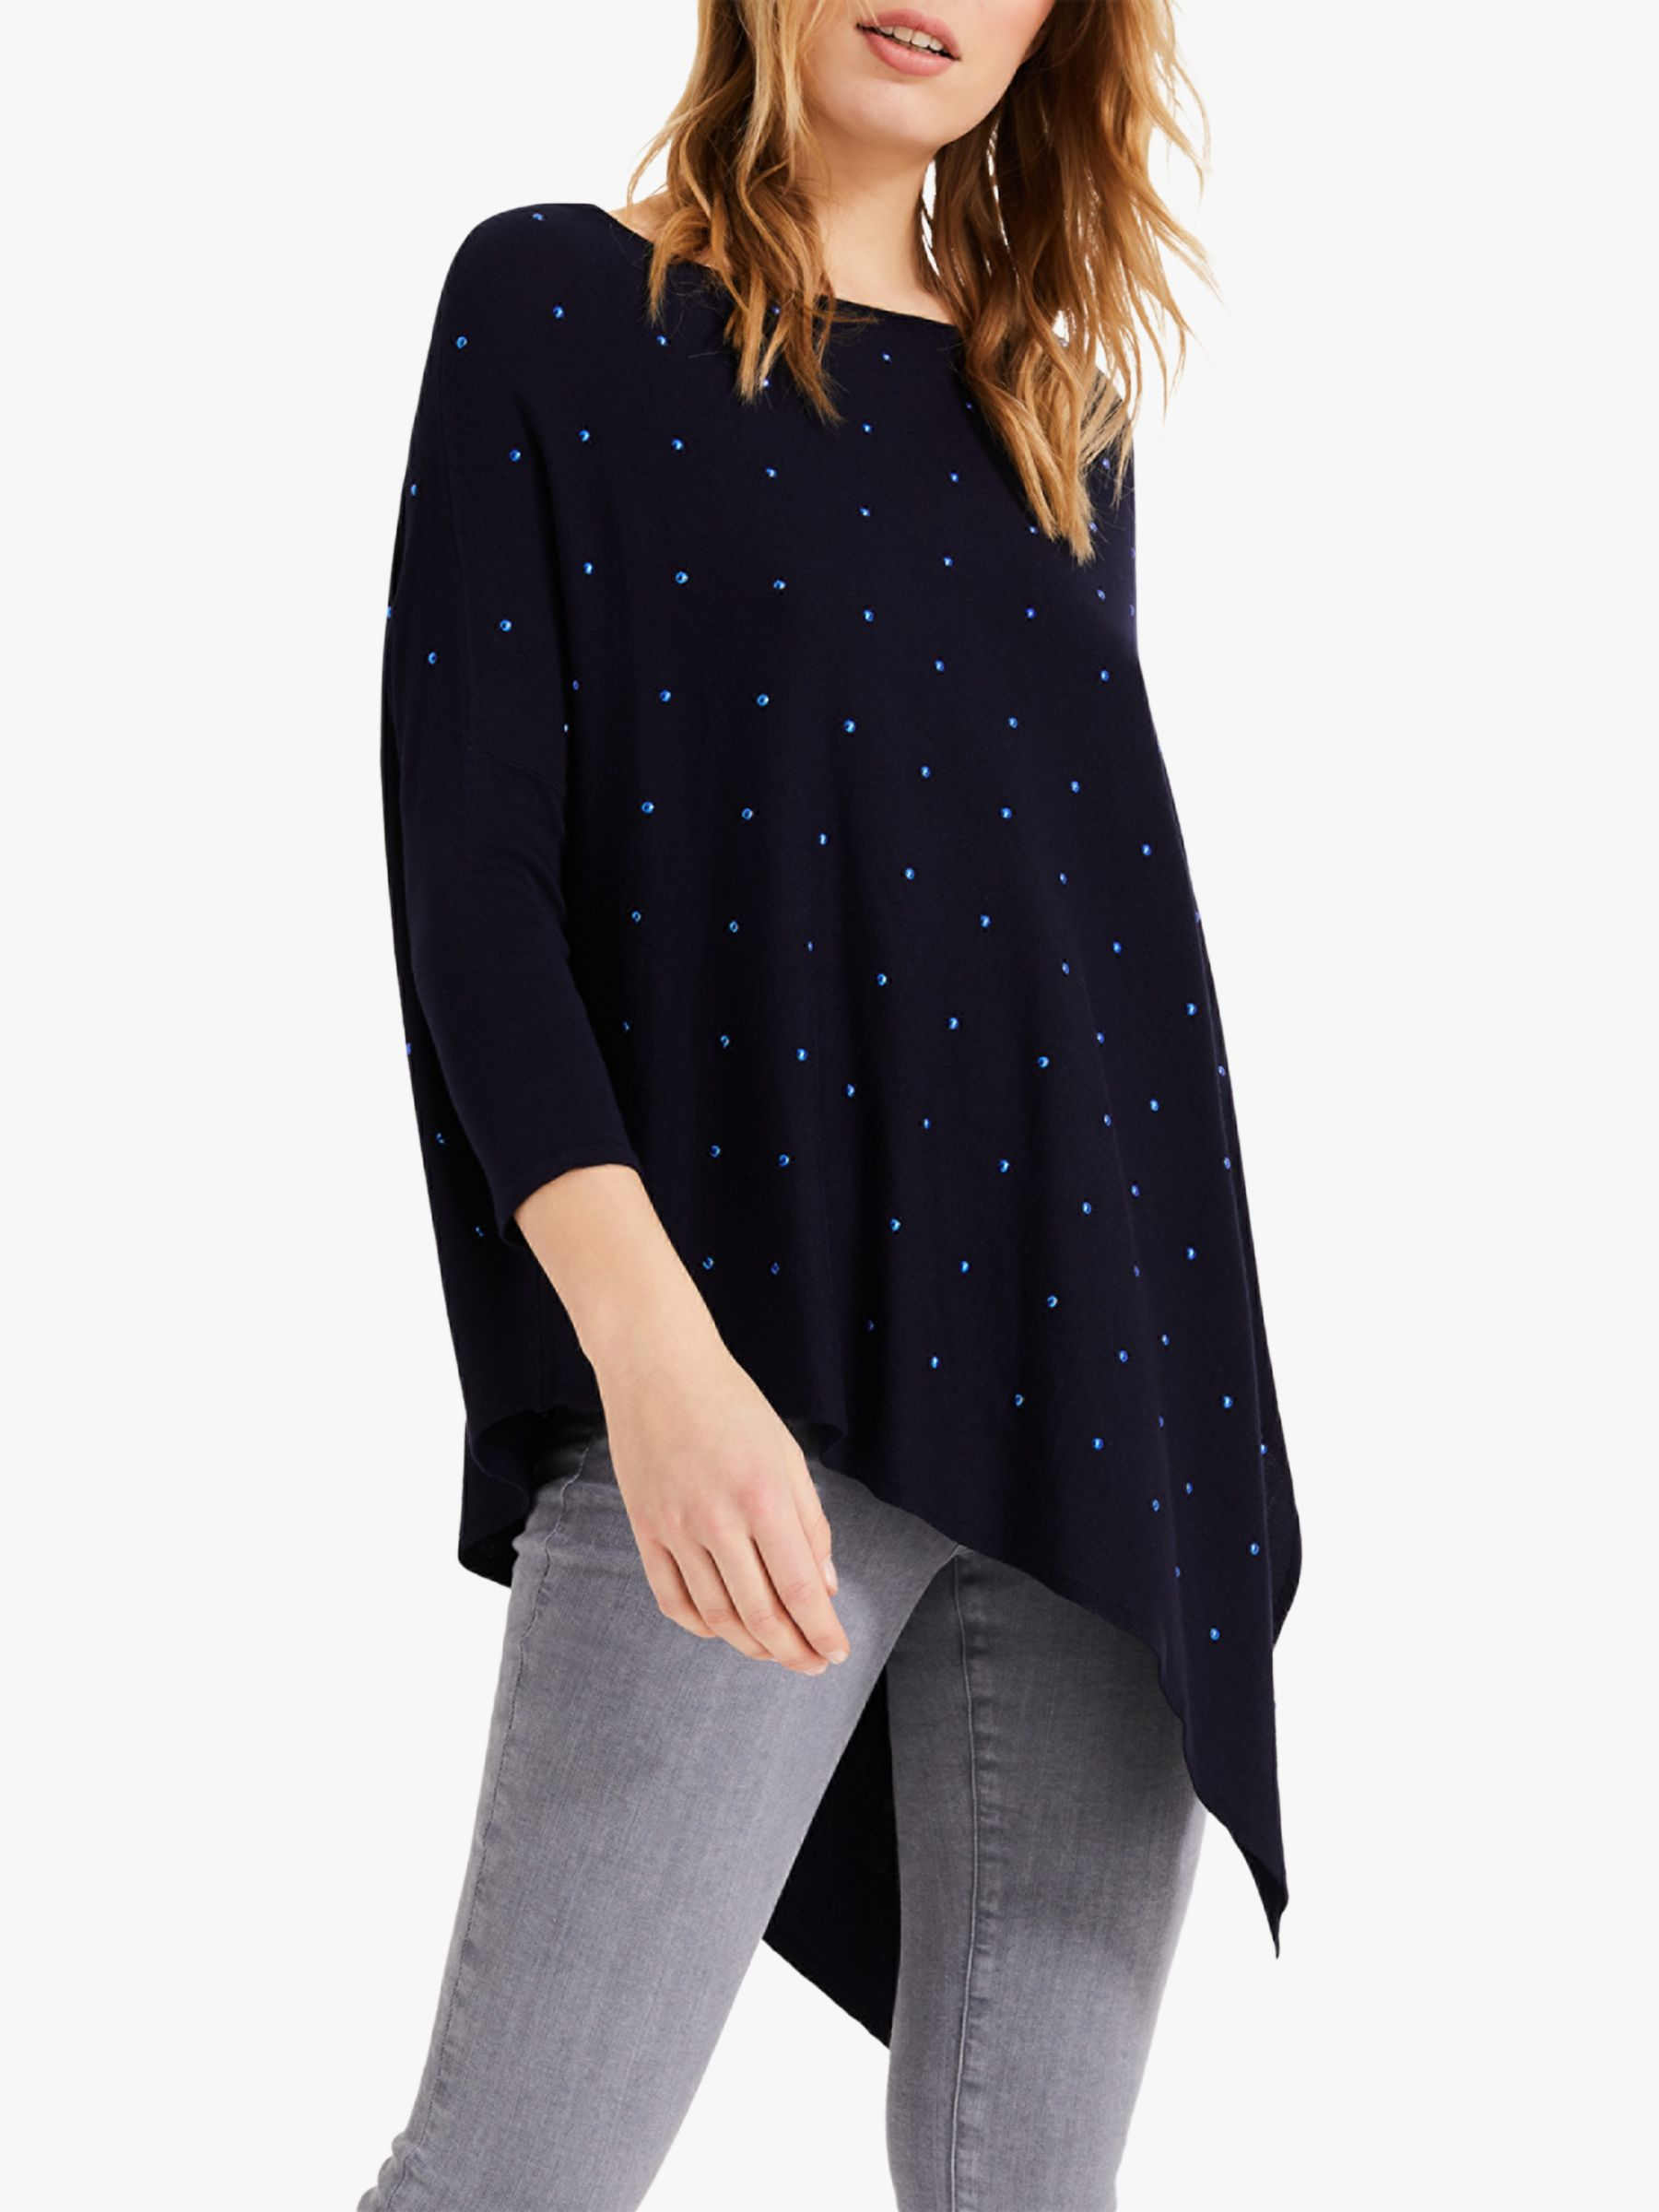 PHASE EIGHT WOMENS JUMPER TOP UK 10 WHITE NAVY SPOTTED